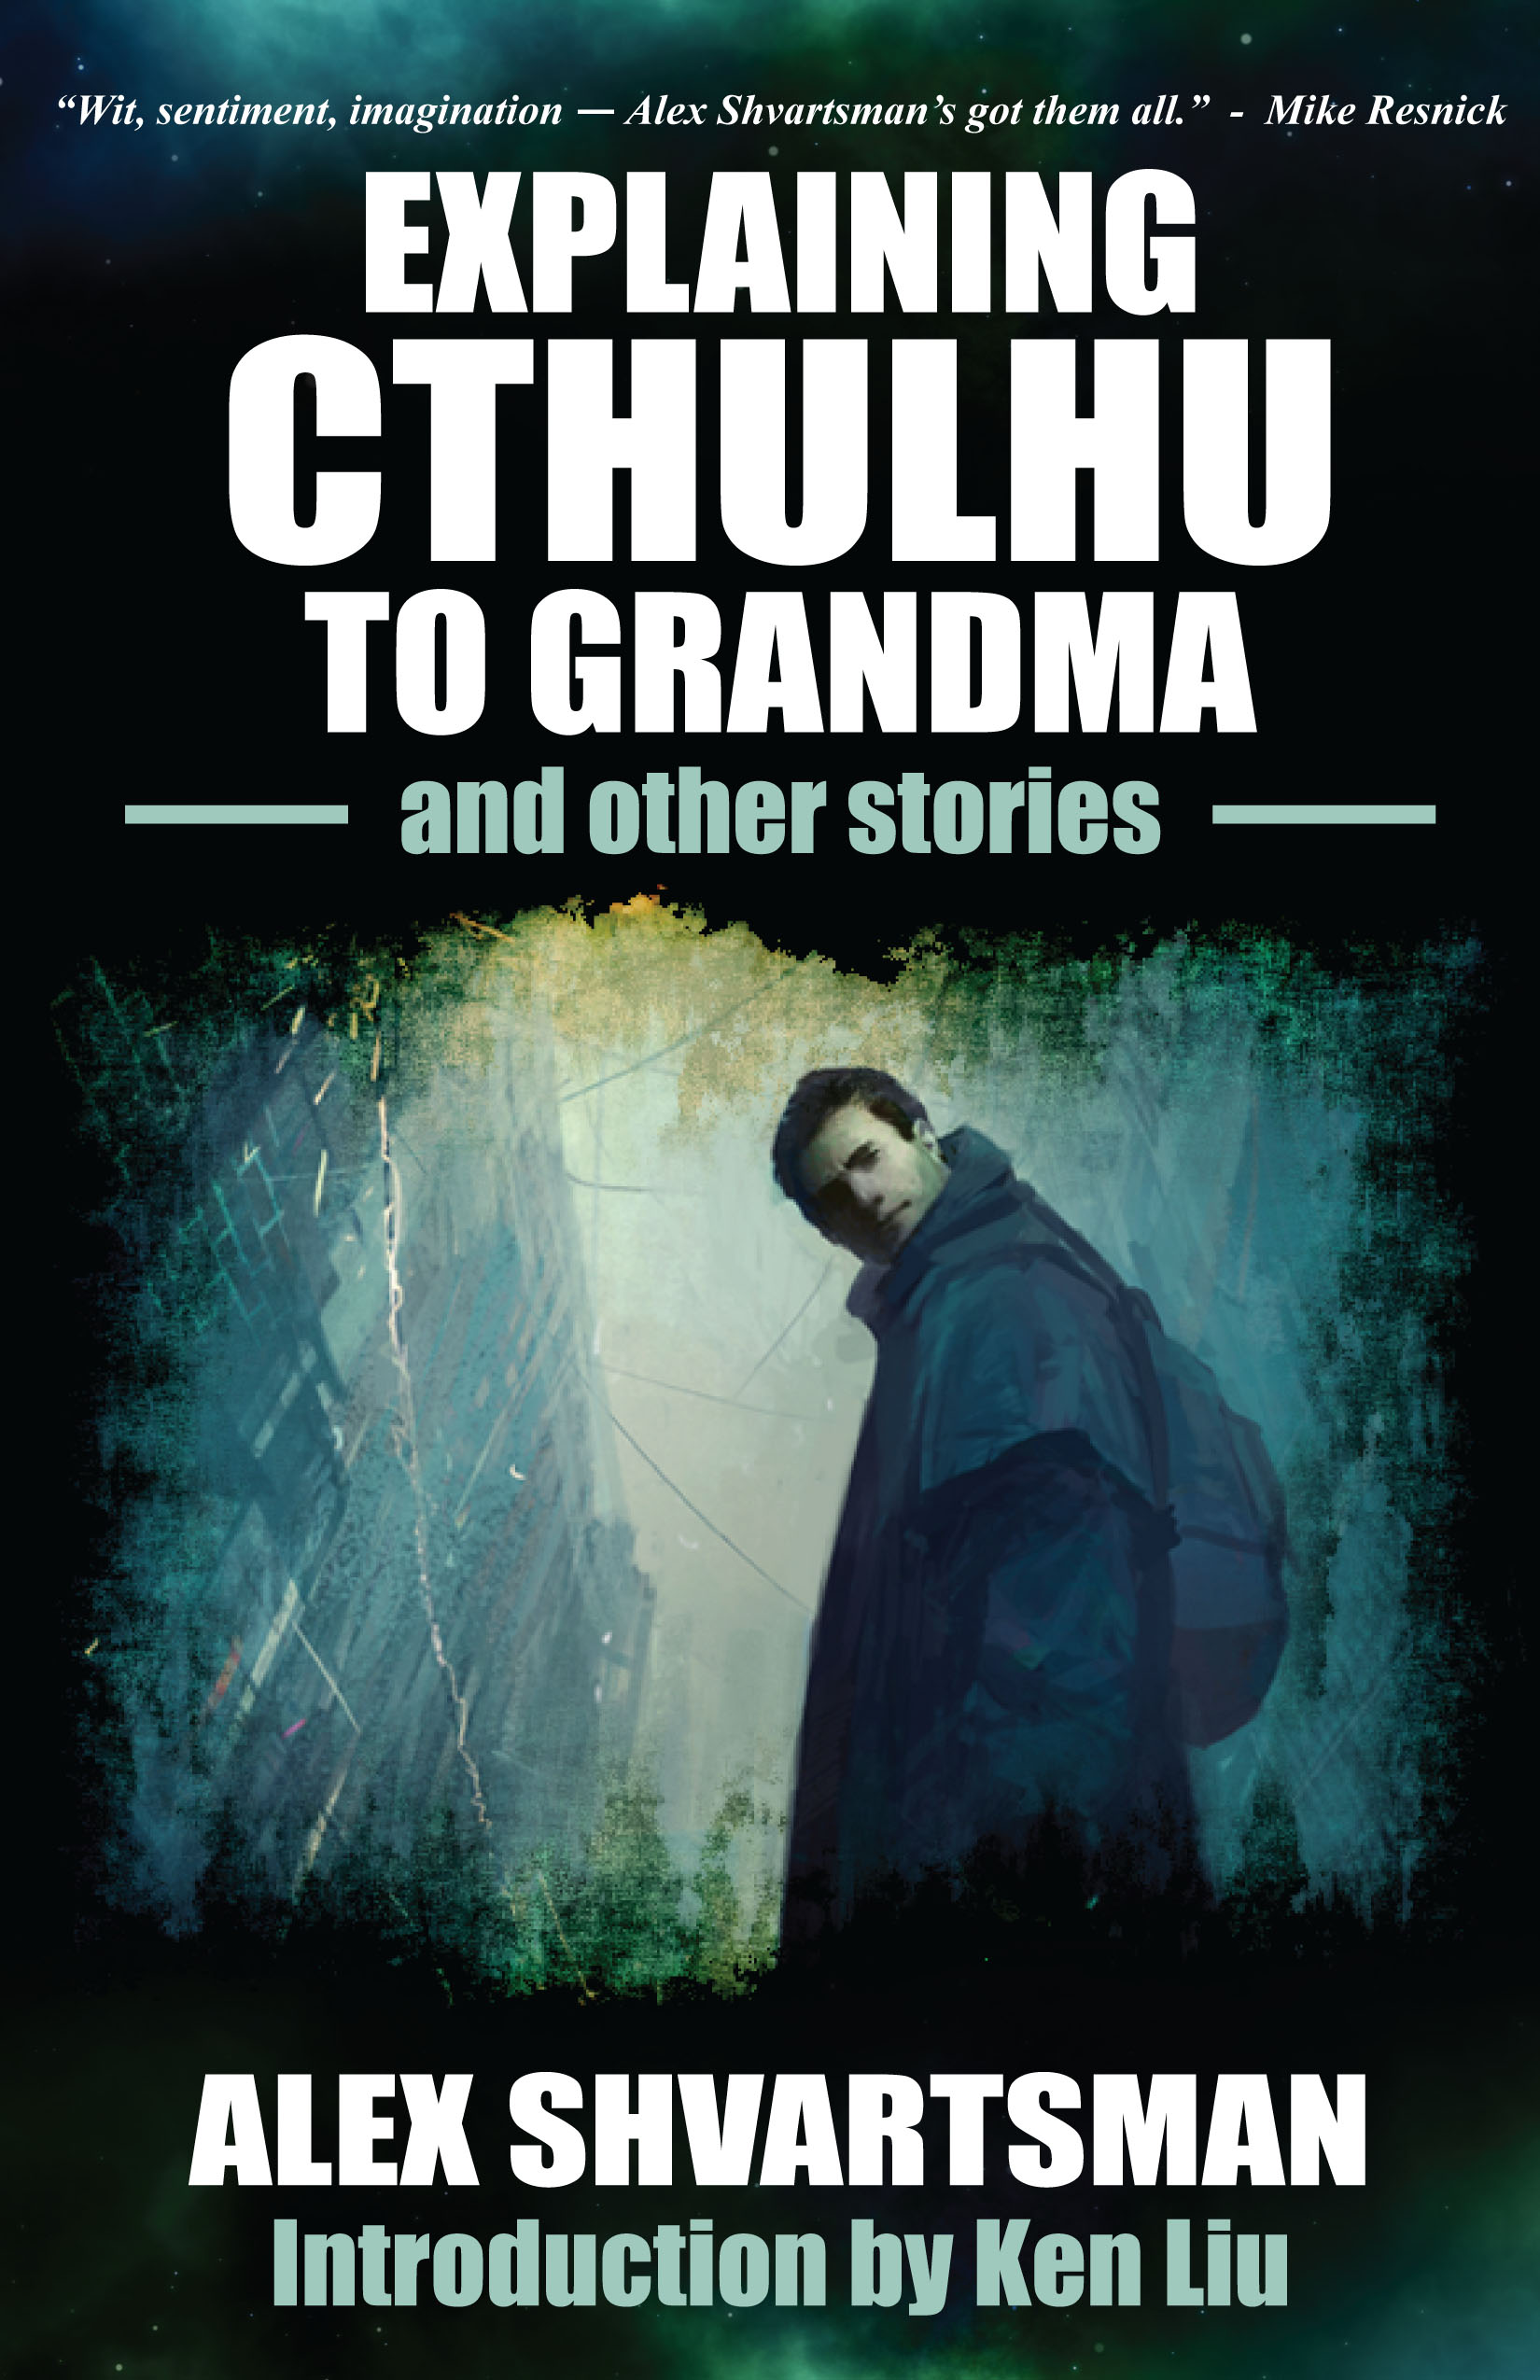 Interview with Alex Shvartsman, Author of Explaining Cthulhu to Grandma and Other Stories